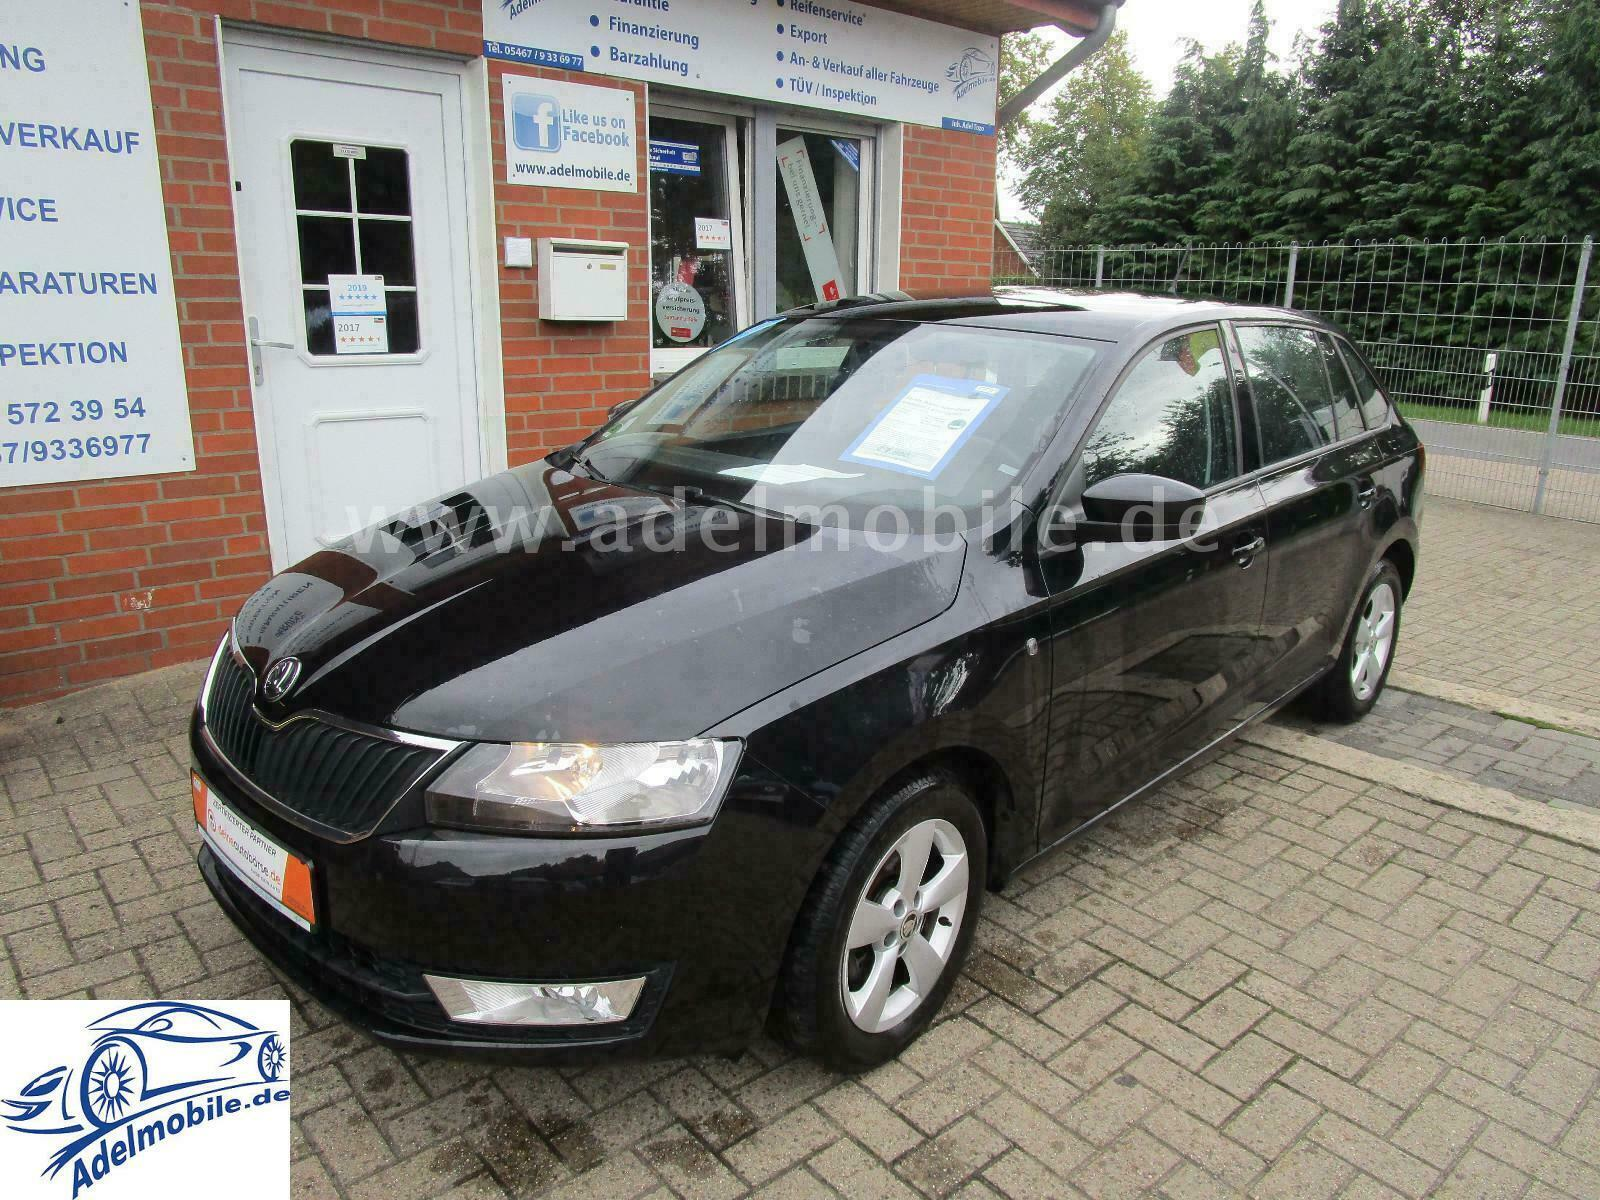 SKODA Rapid Spaceback Ambition 1,6TDI Euro5 TÜV07/2021